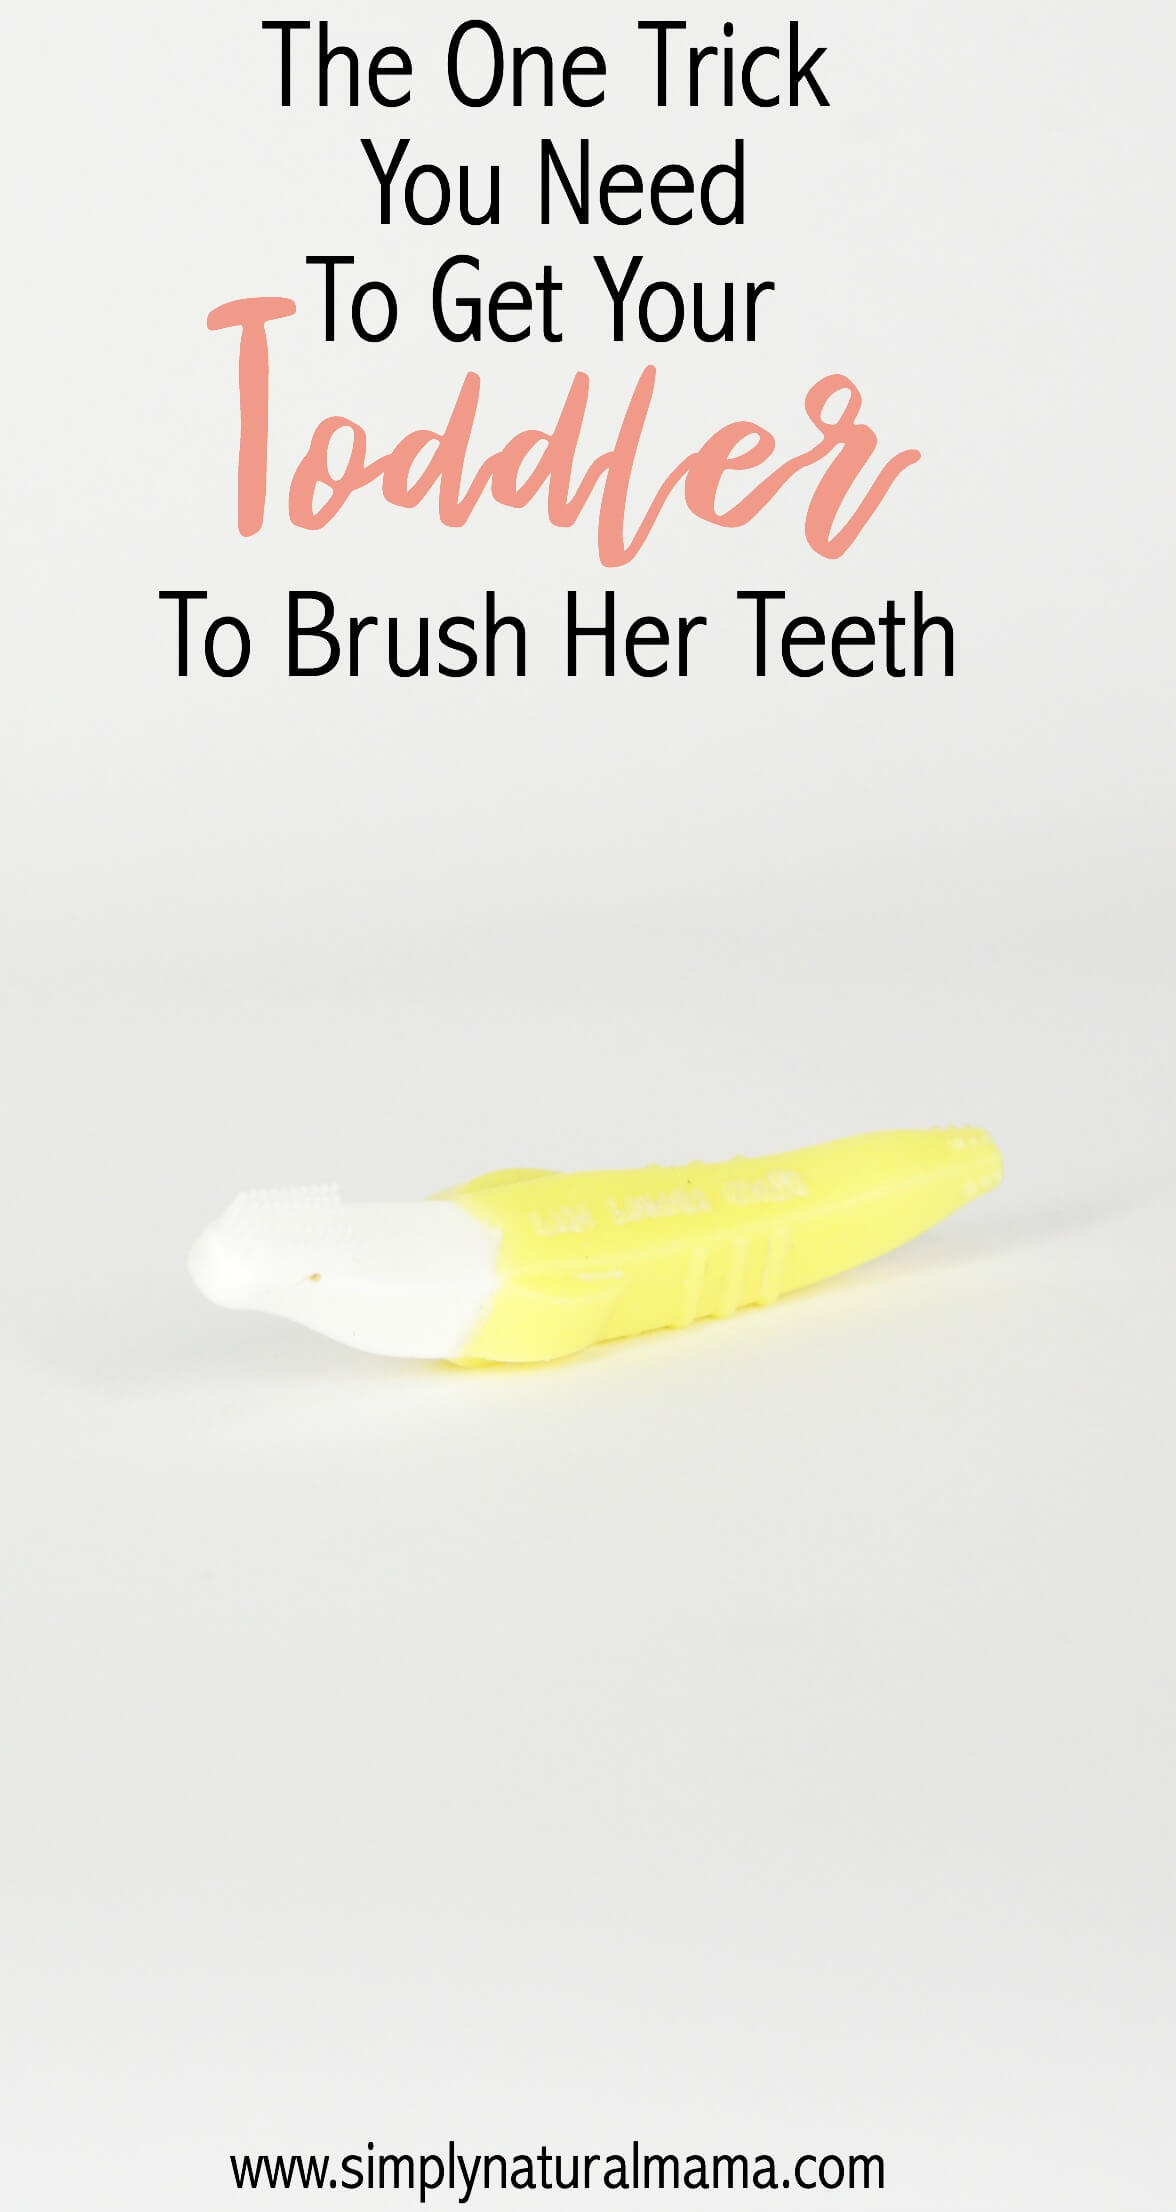 I have really been struggling to get my child to brush his teeth. I am so thankful that I read this article. This trick really did work!